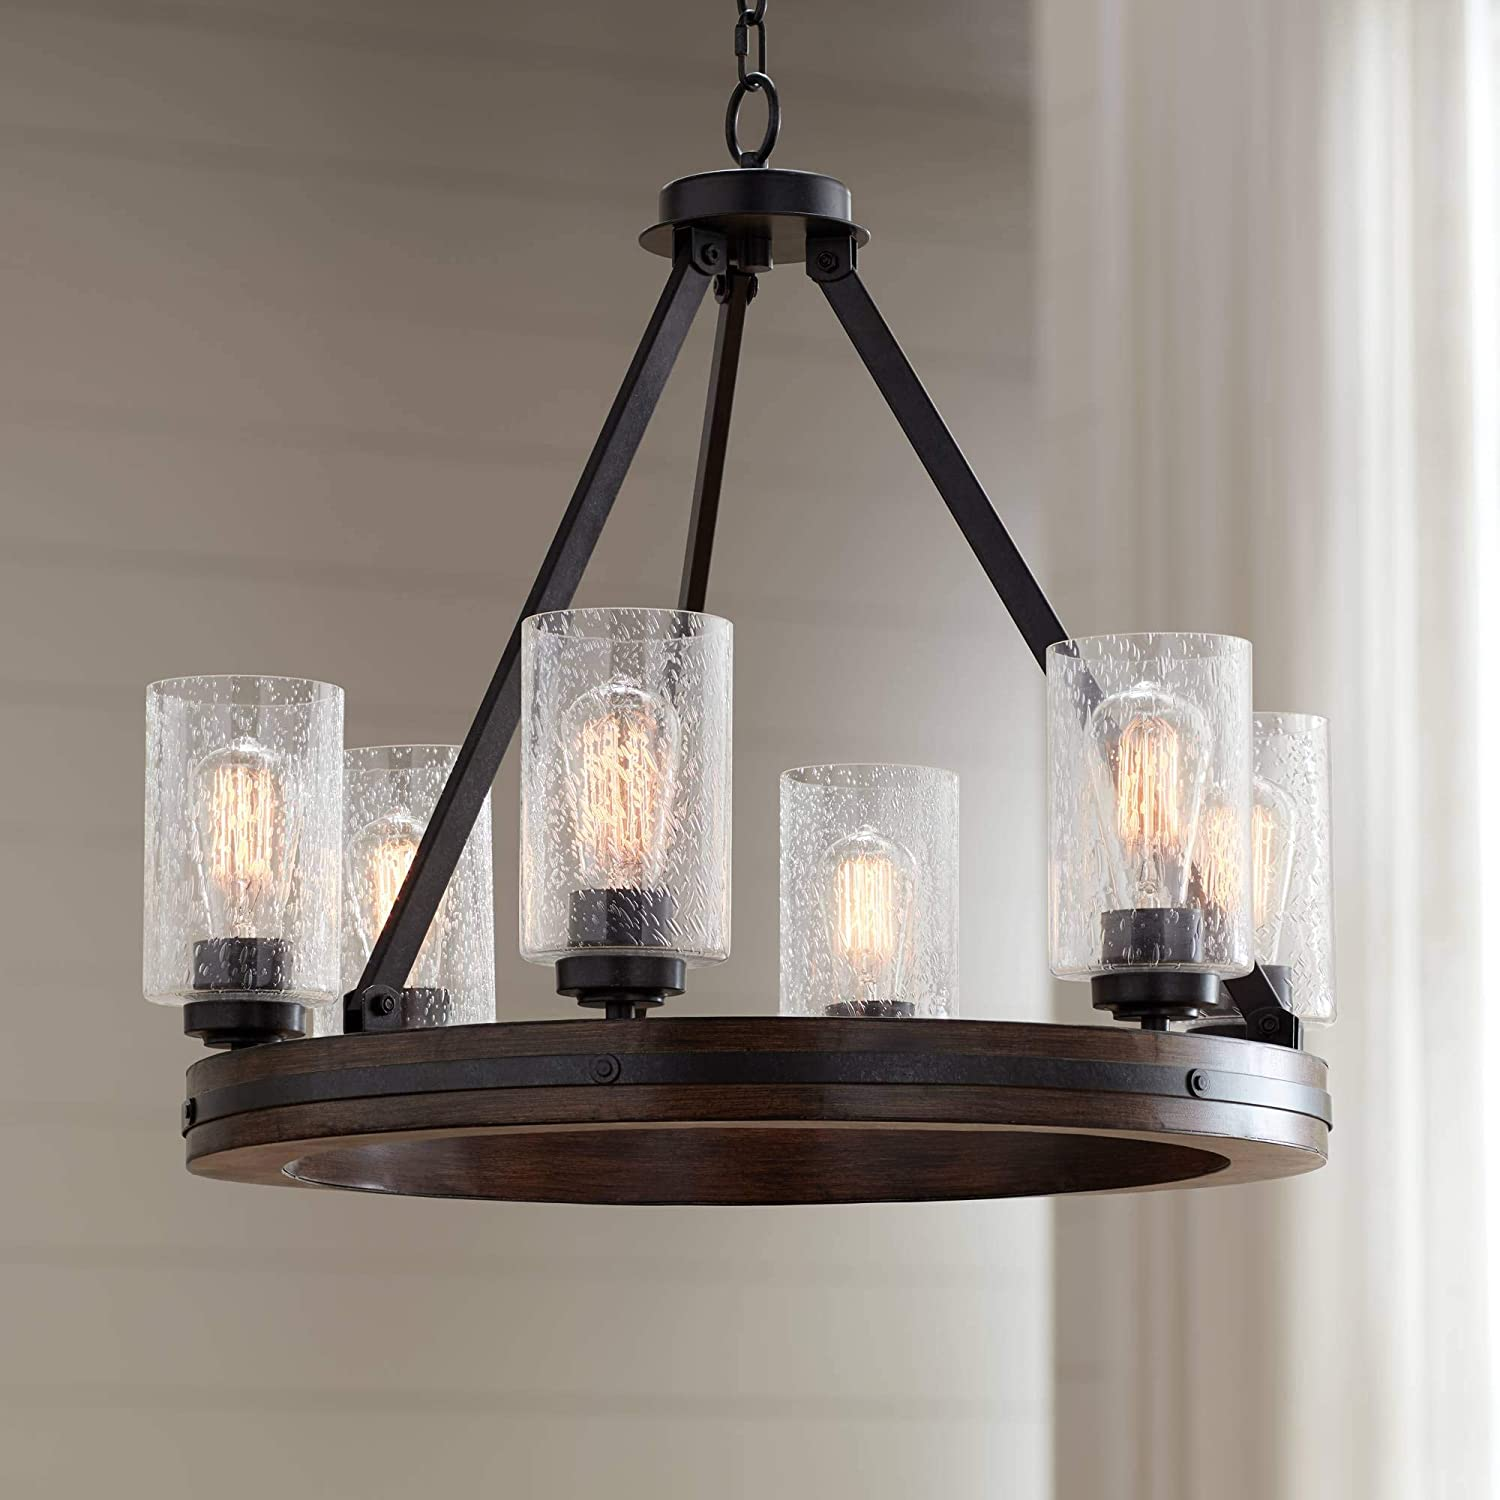 Gorham Iron Gray Wagon Wheel Chandelier 25 Wide Rustic Farmhouse Faux Wood Clear Seeded Glass 6 Light Fixture For Dining Room House Foyer Kitchen Entryway Bedroom Living Room Franklin Iron Works